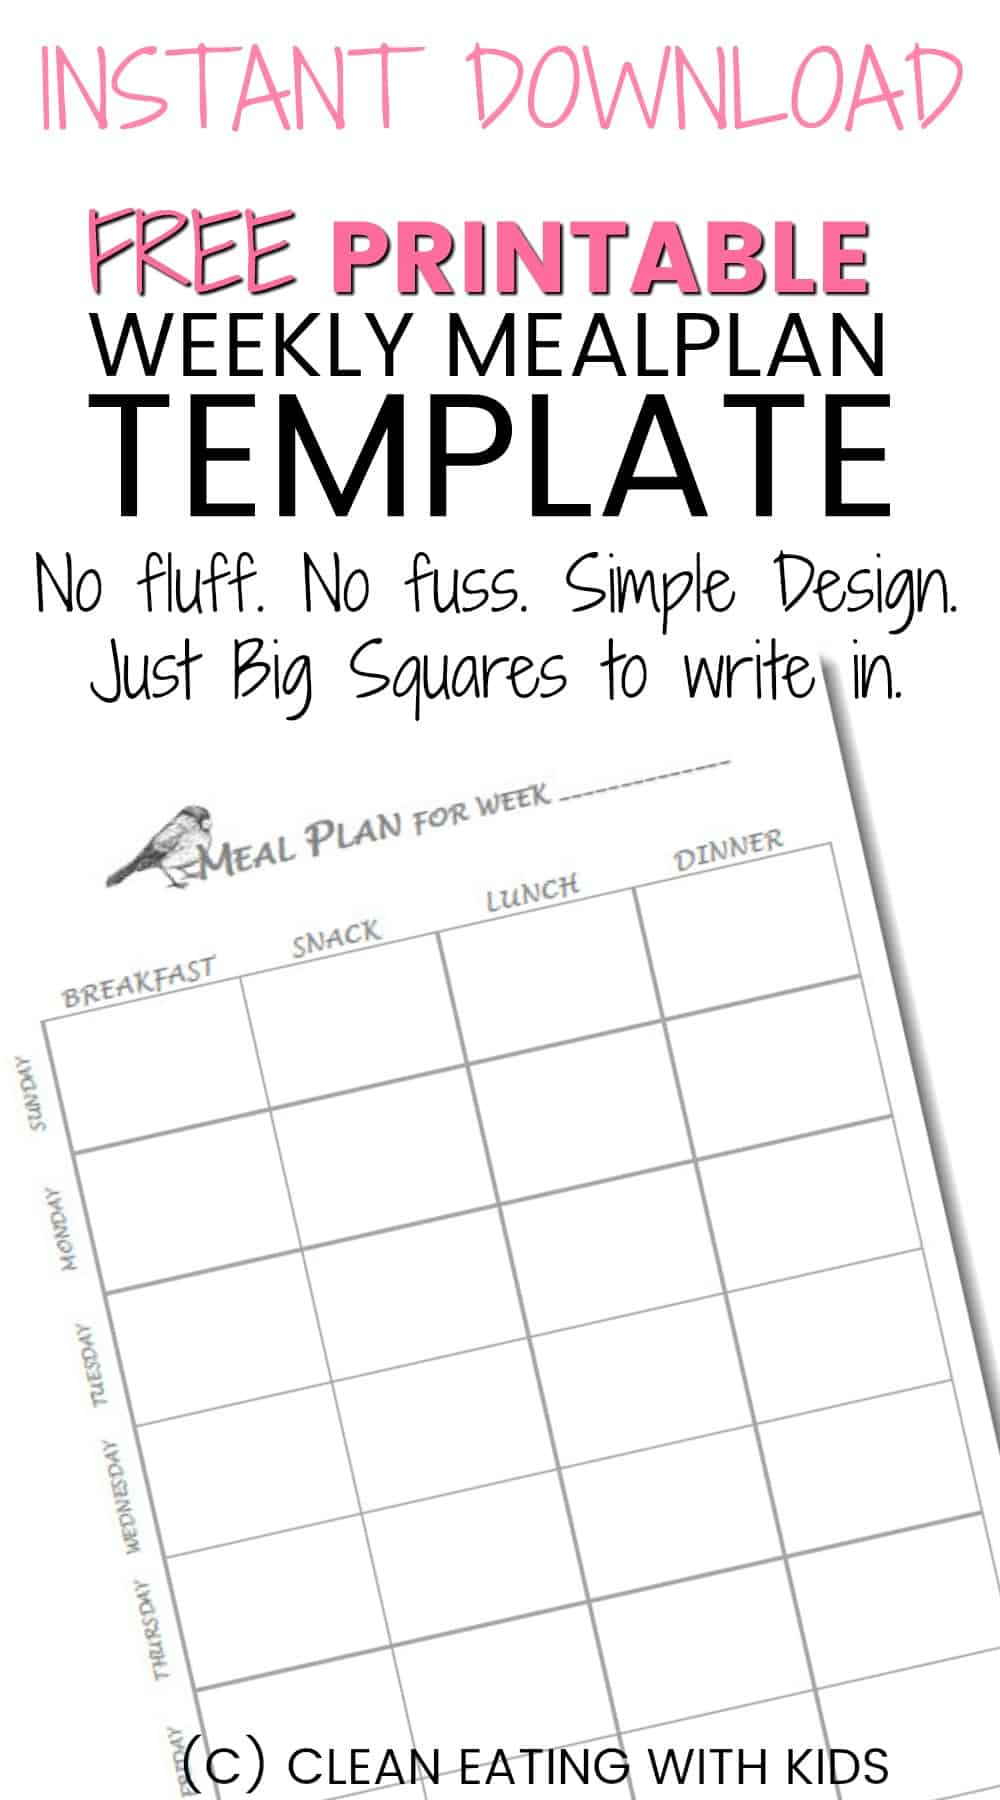 image regarding Meal Planner Free Printable known as Absolutely free Printable Weekly Evening meal Method Template - Fresh Consuming with